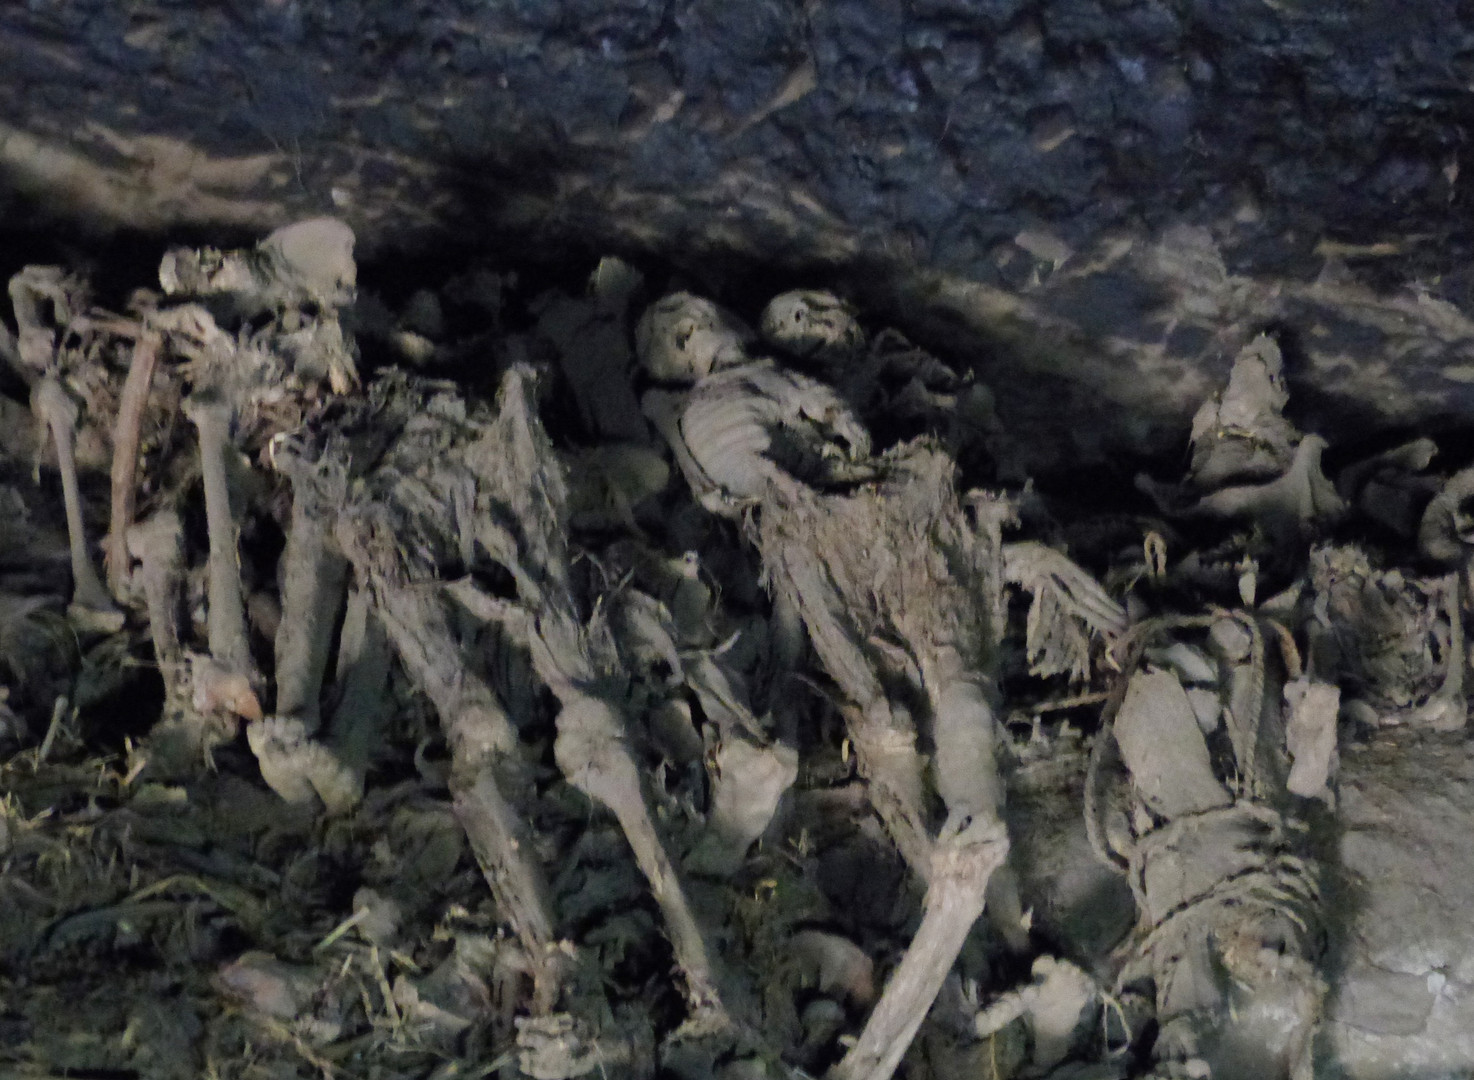 Naturally mummified bodies and commingled remains at the back of Yǝmrǝḥannä Krǝstos cave